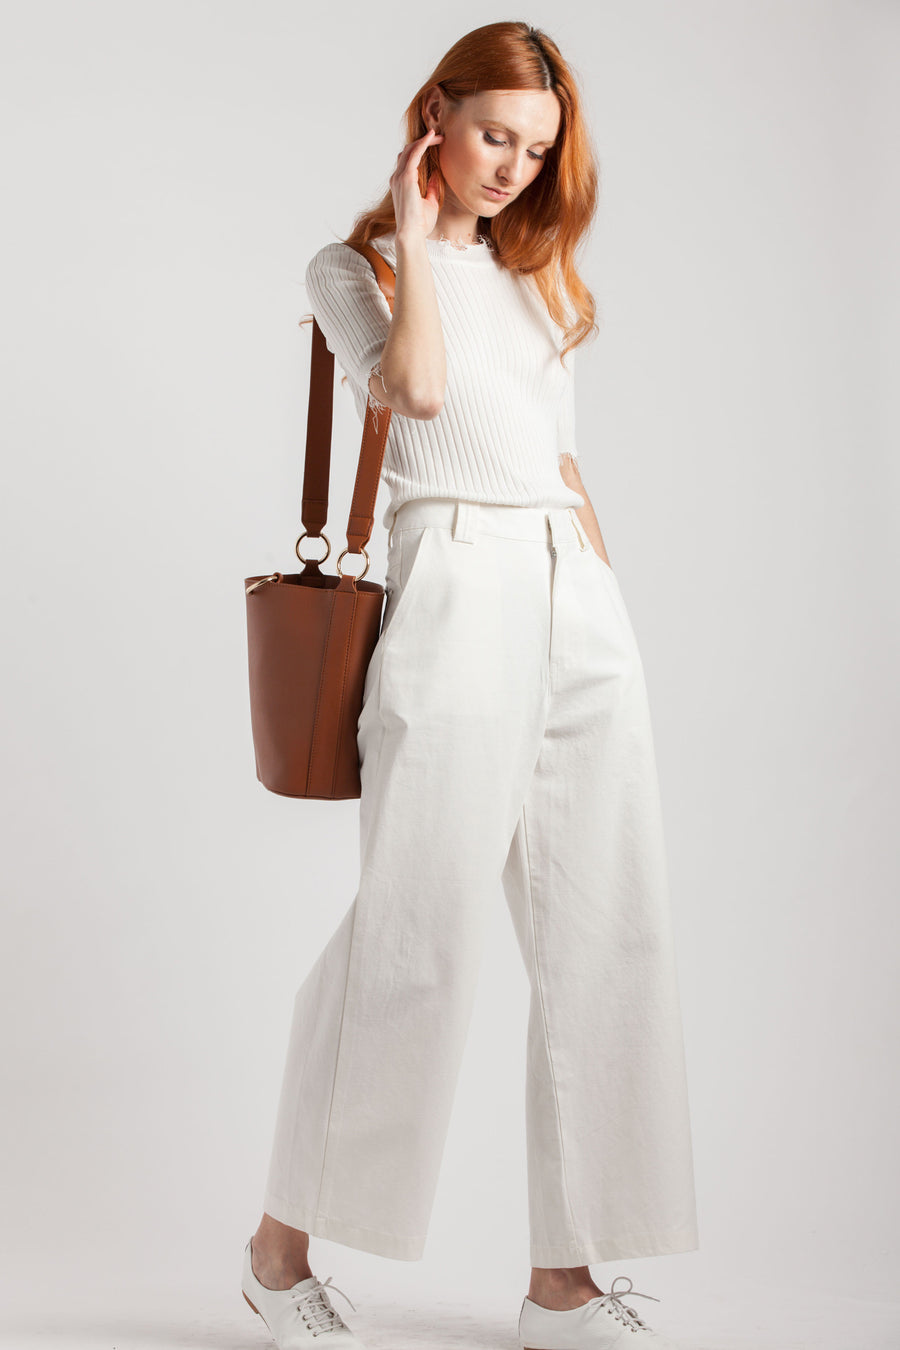 White Cotton Trousers - Via Ennji Online Store